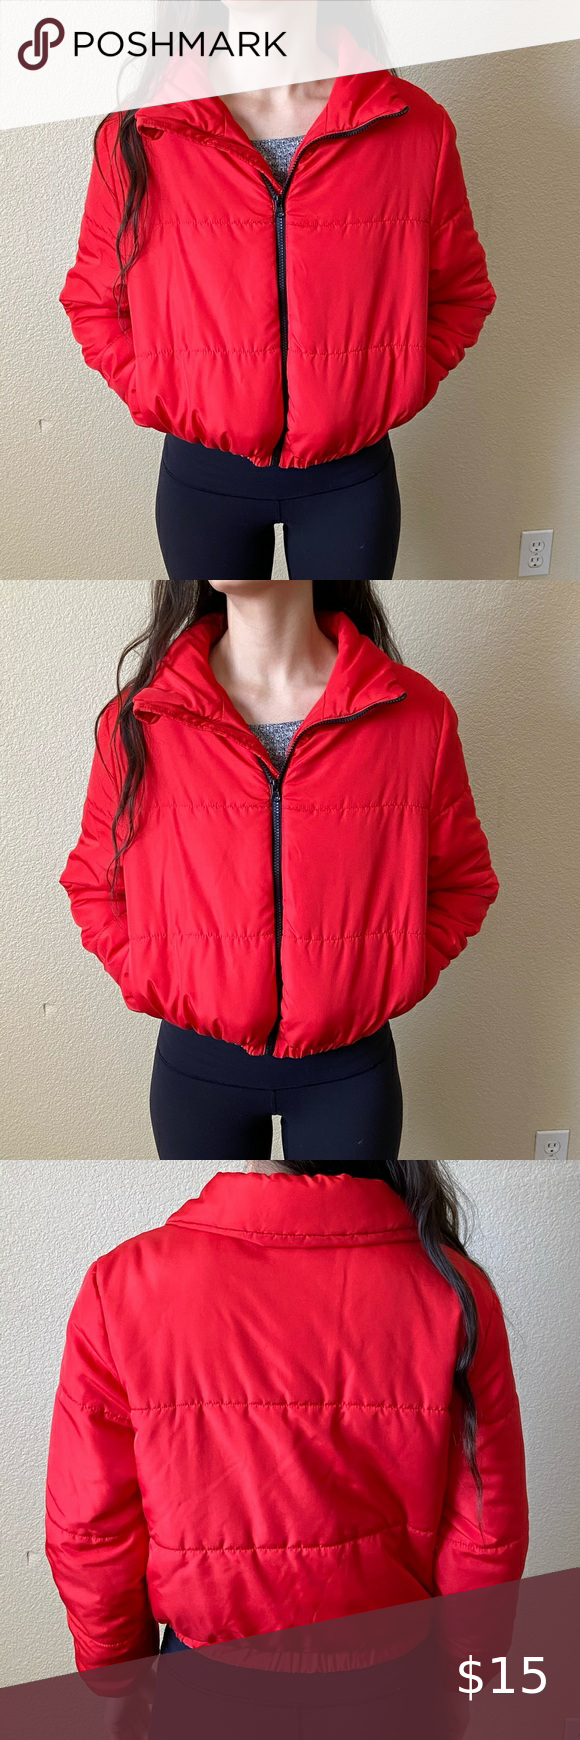 Wild Fable Red Puffy Jacket Puffy Jacket Red Puffer Jacket Coats Jackets Women [ 1740 x 580 Pixel ]